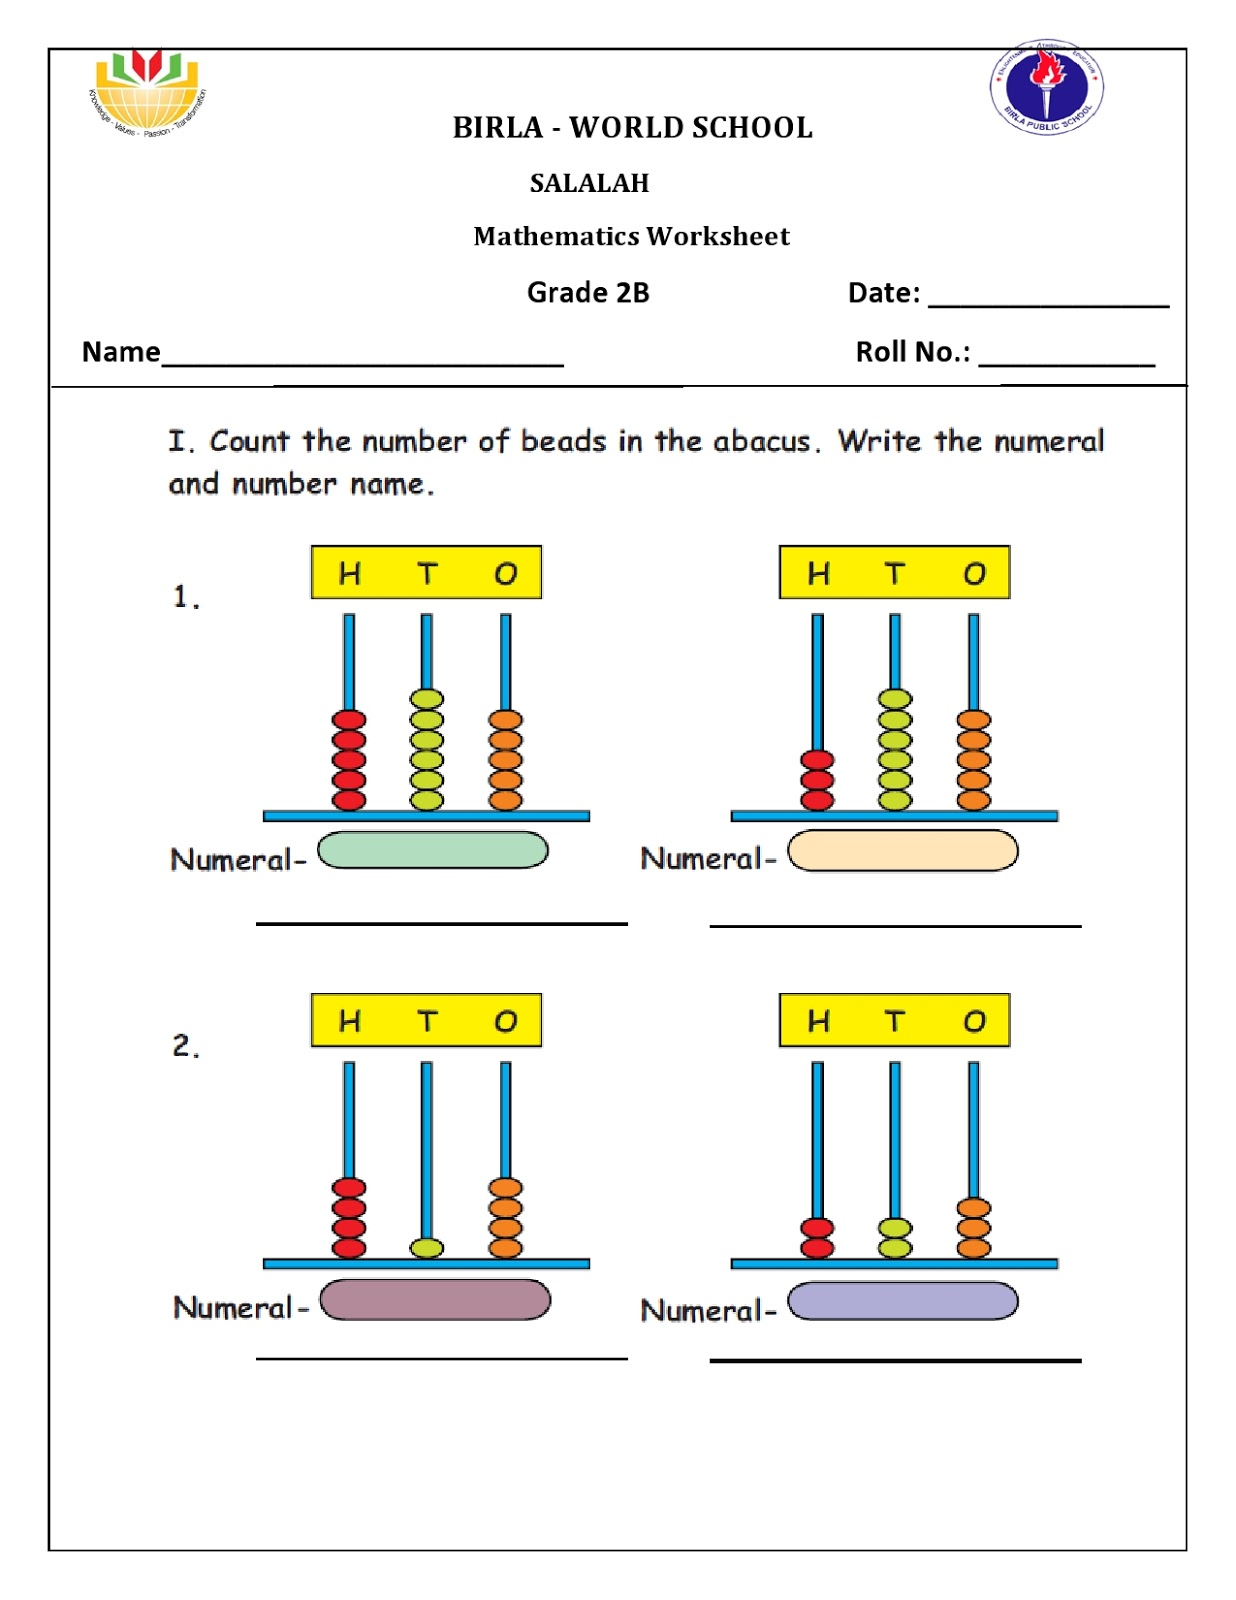 Birla World School Oman Homework For Grade 2 B On 25 08 16